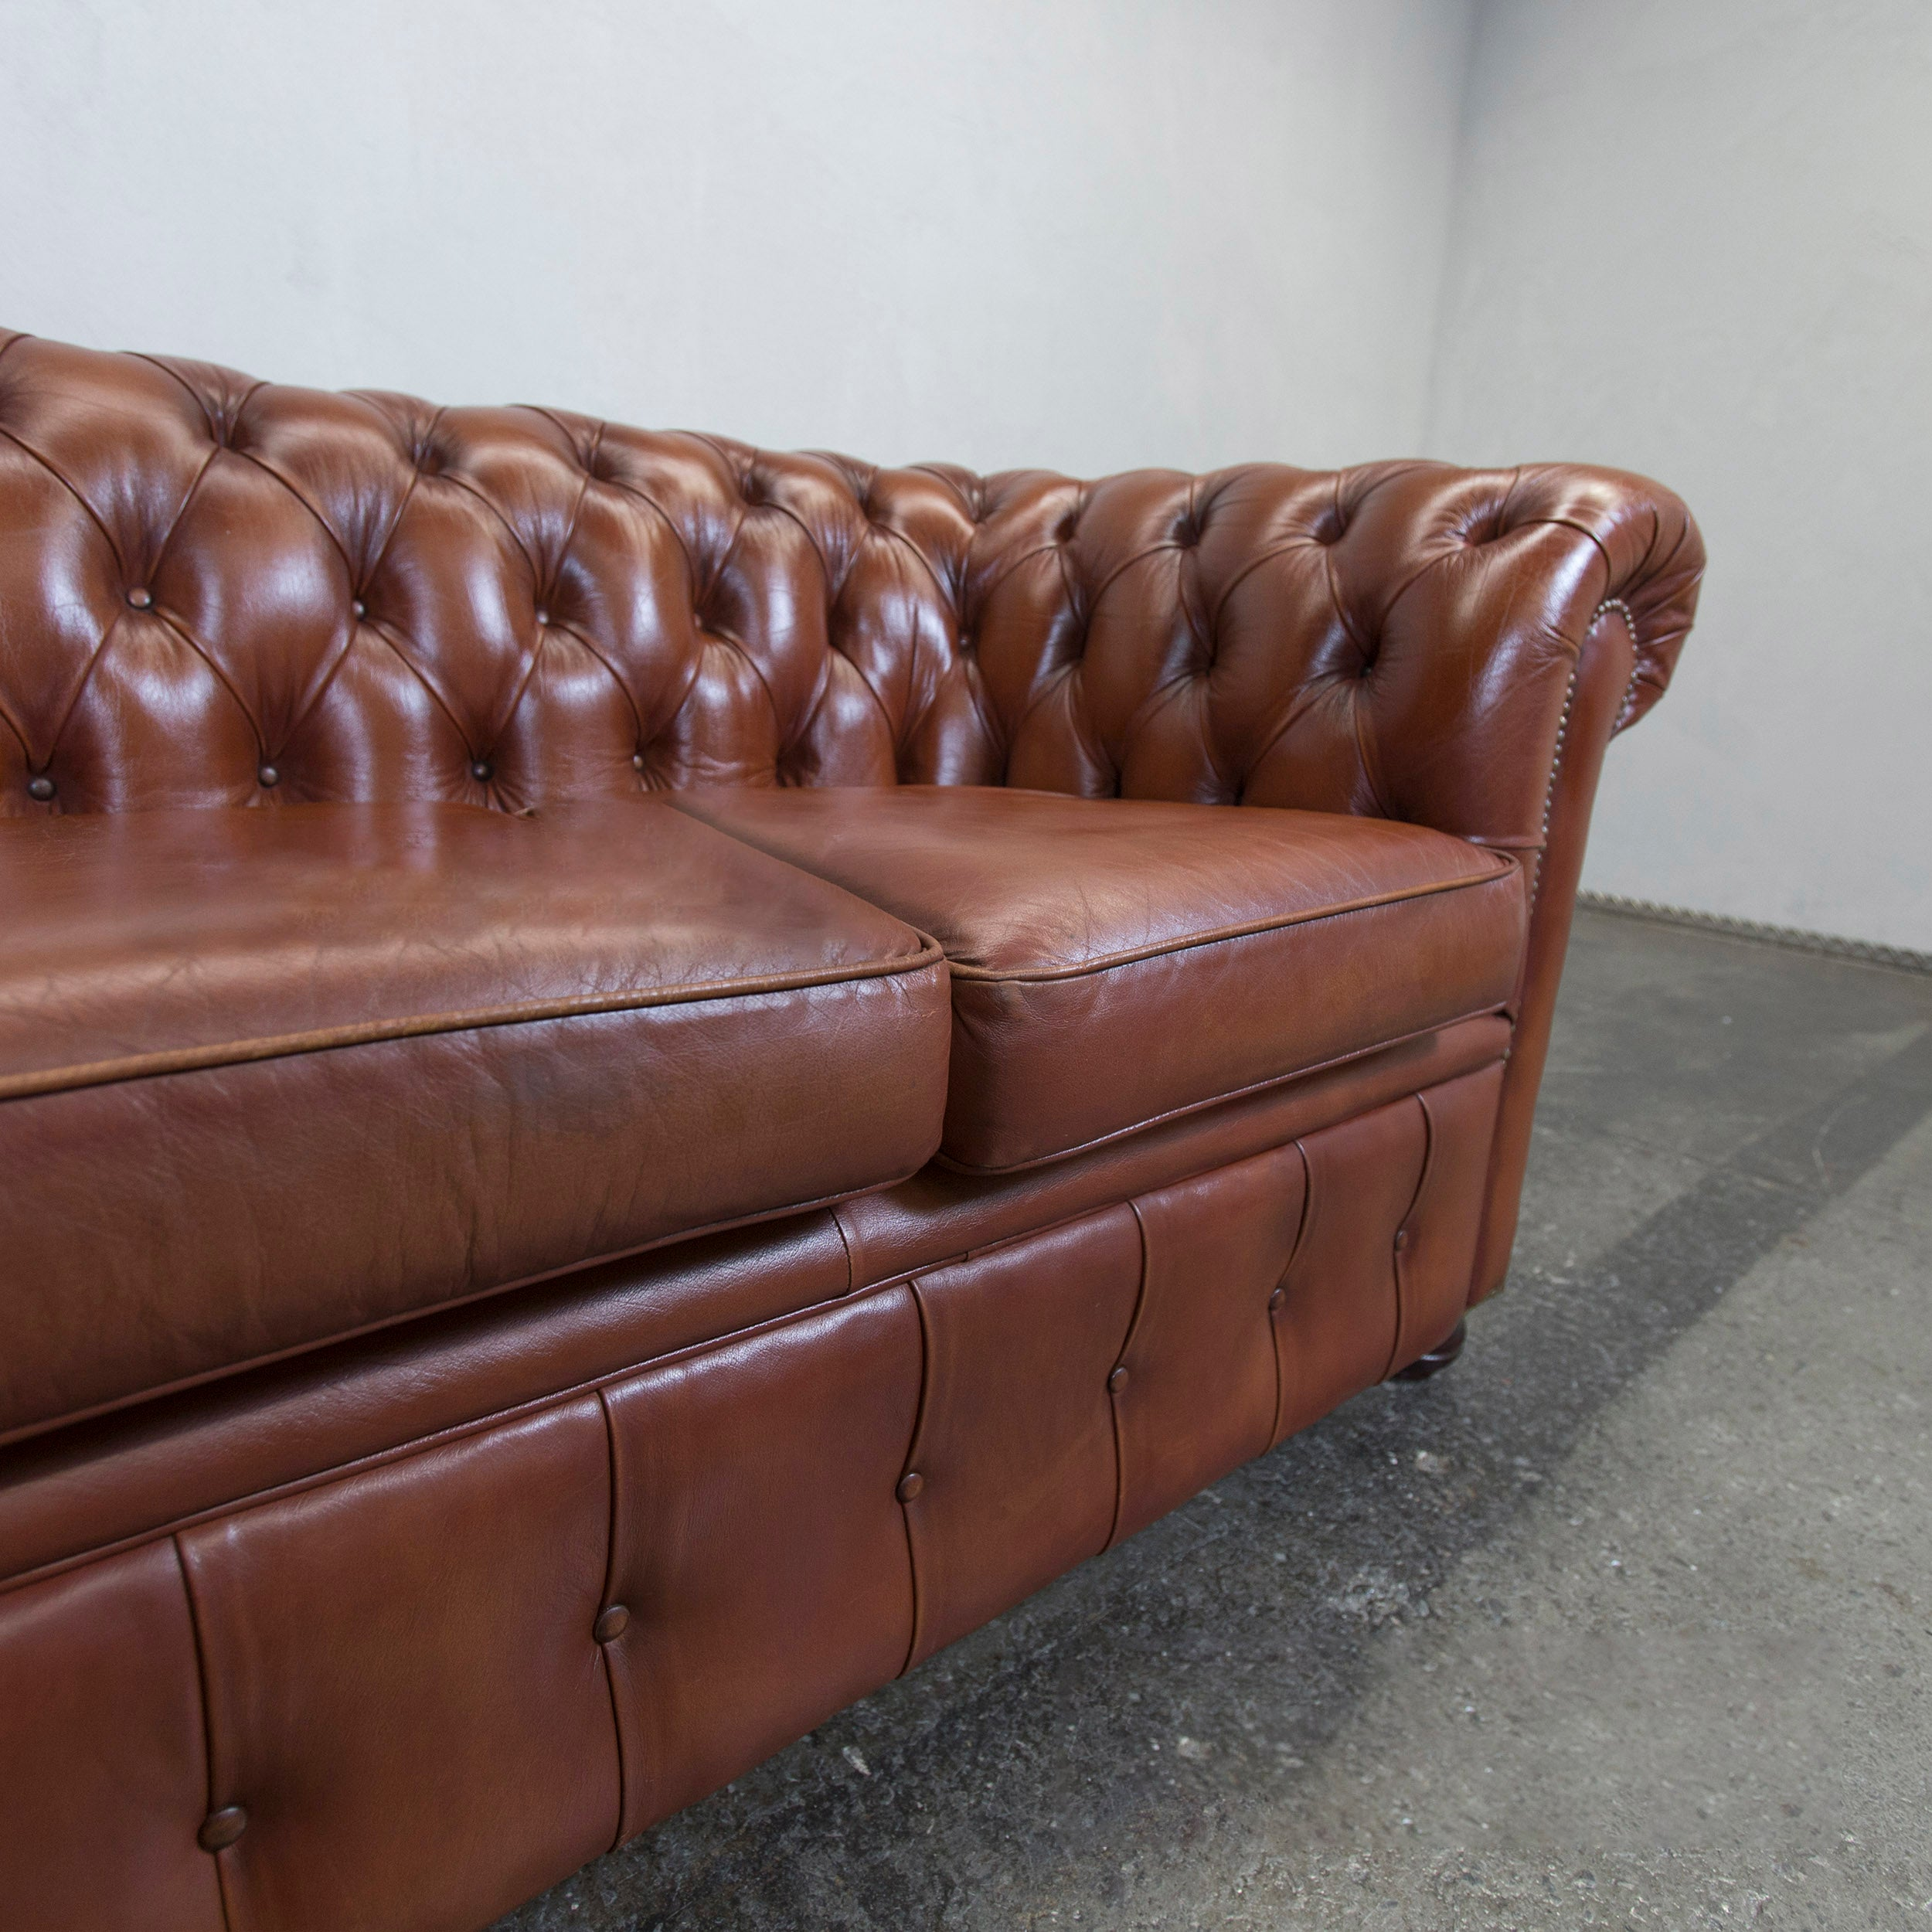 Chesterfield Leather Sofa Brown Two Seat Couch Vintage Retro At 1stdibs